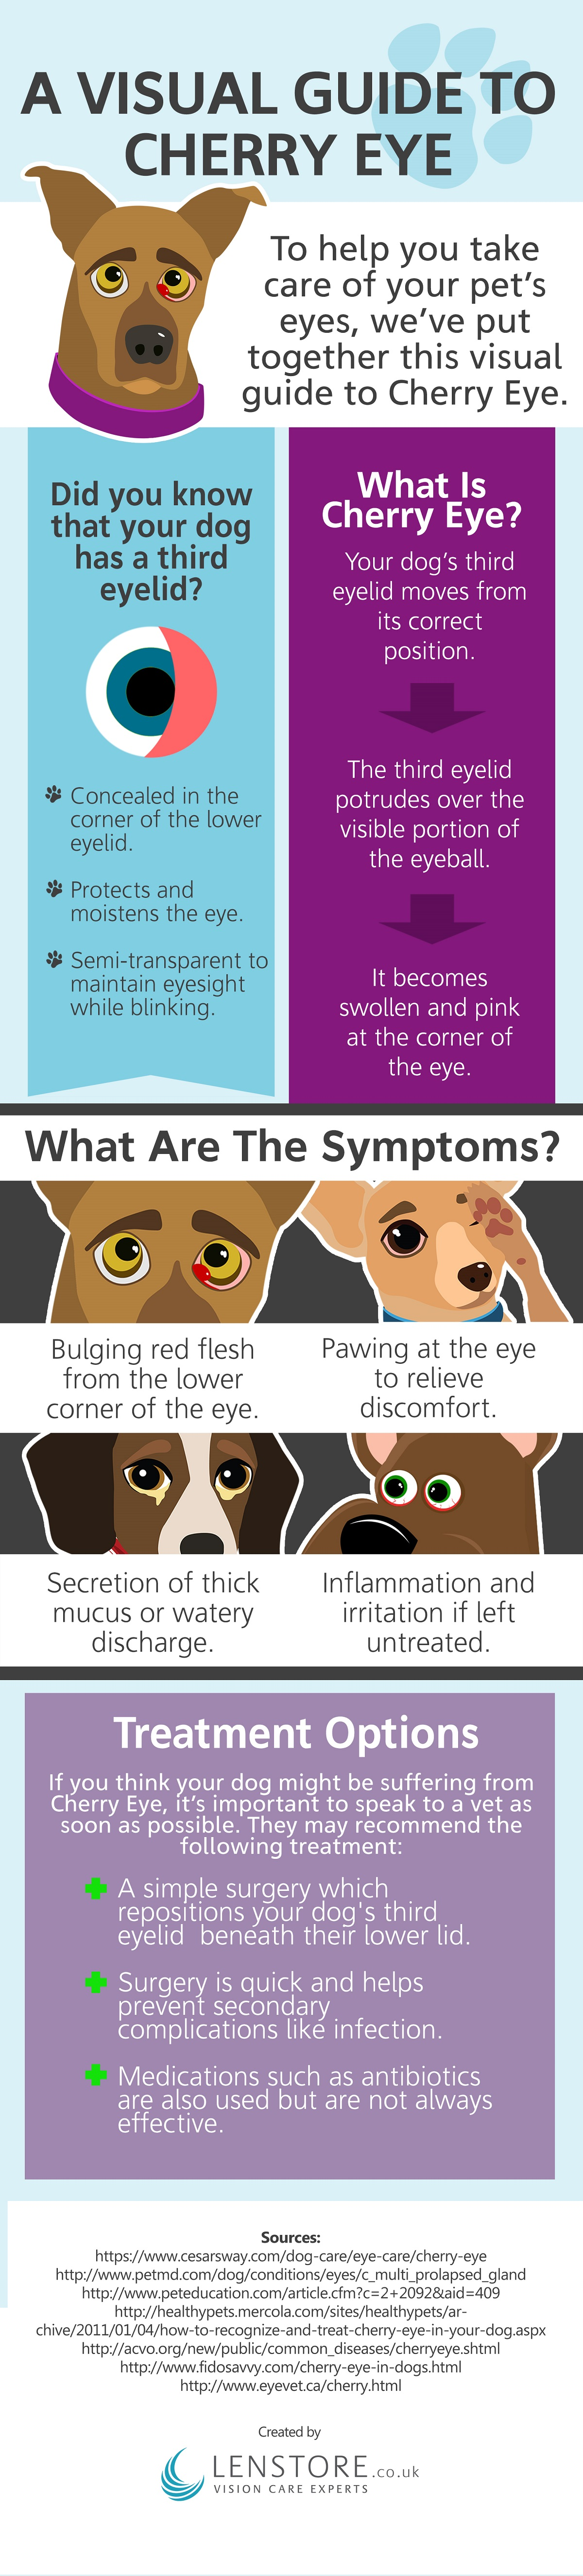 Cherry eye in dogs and cats infographic